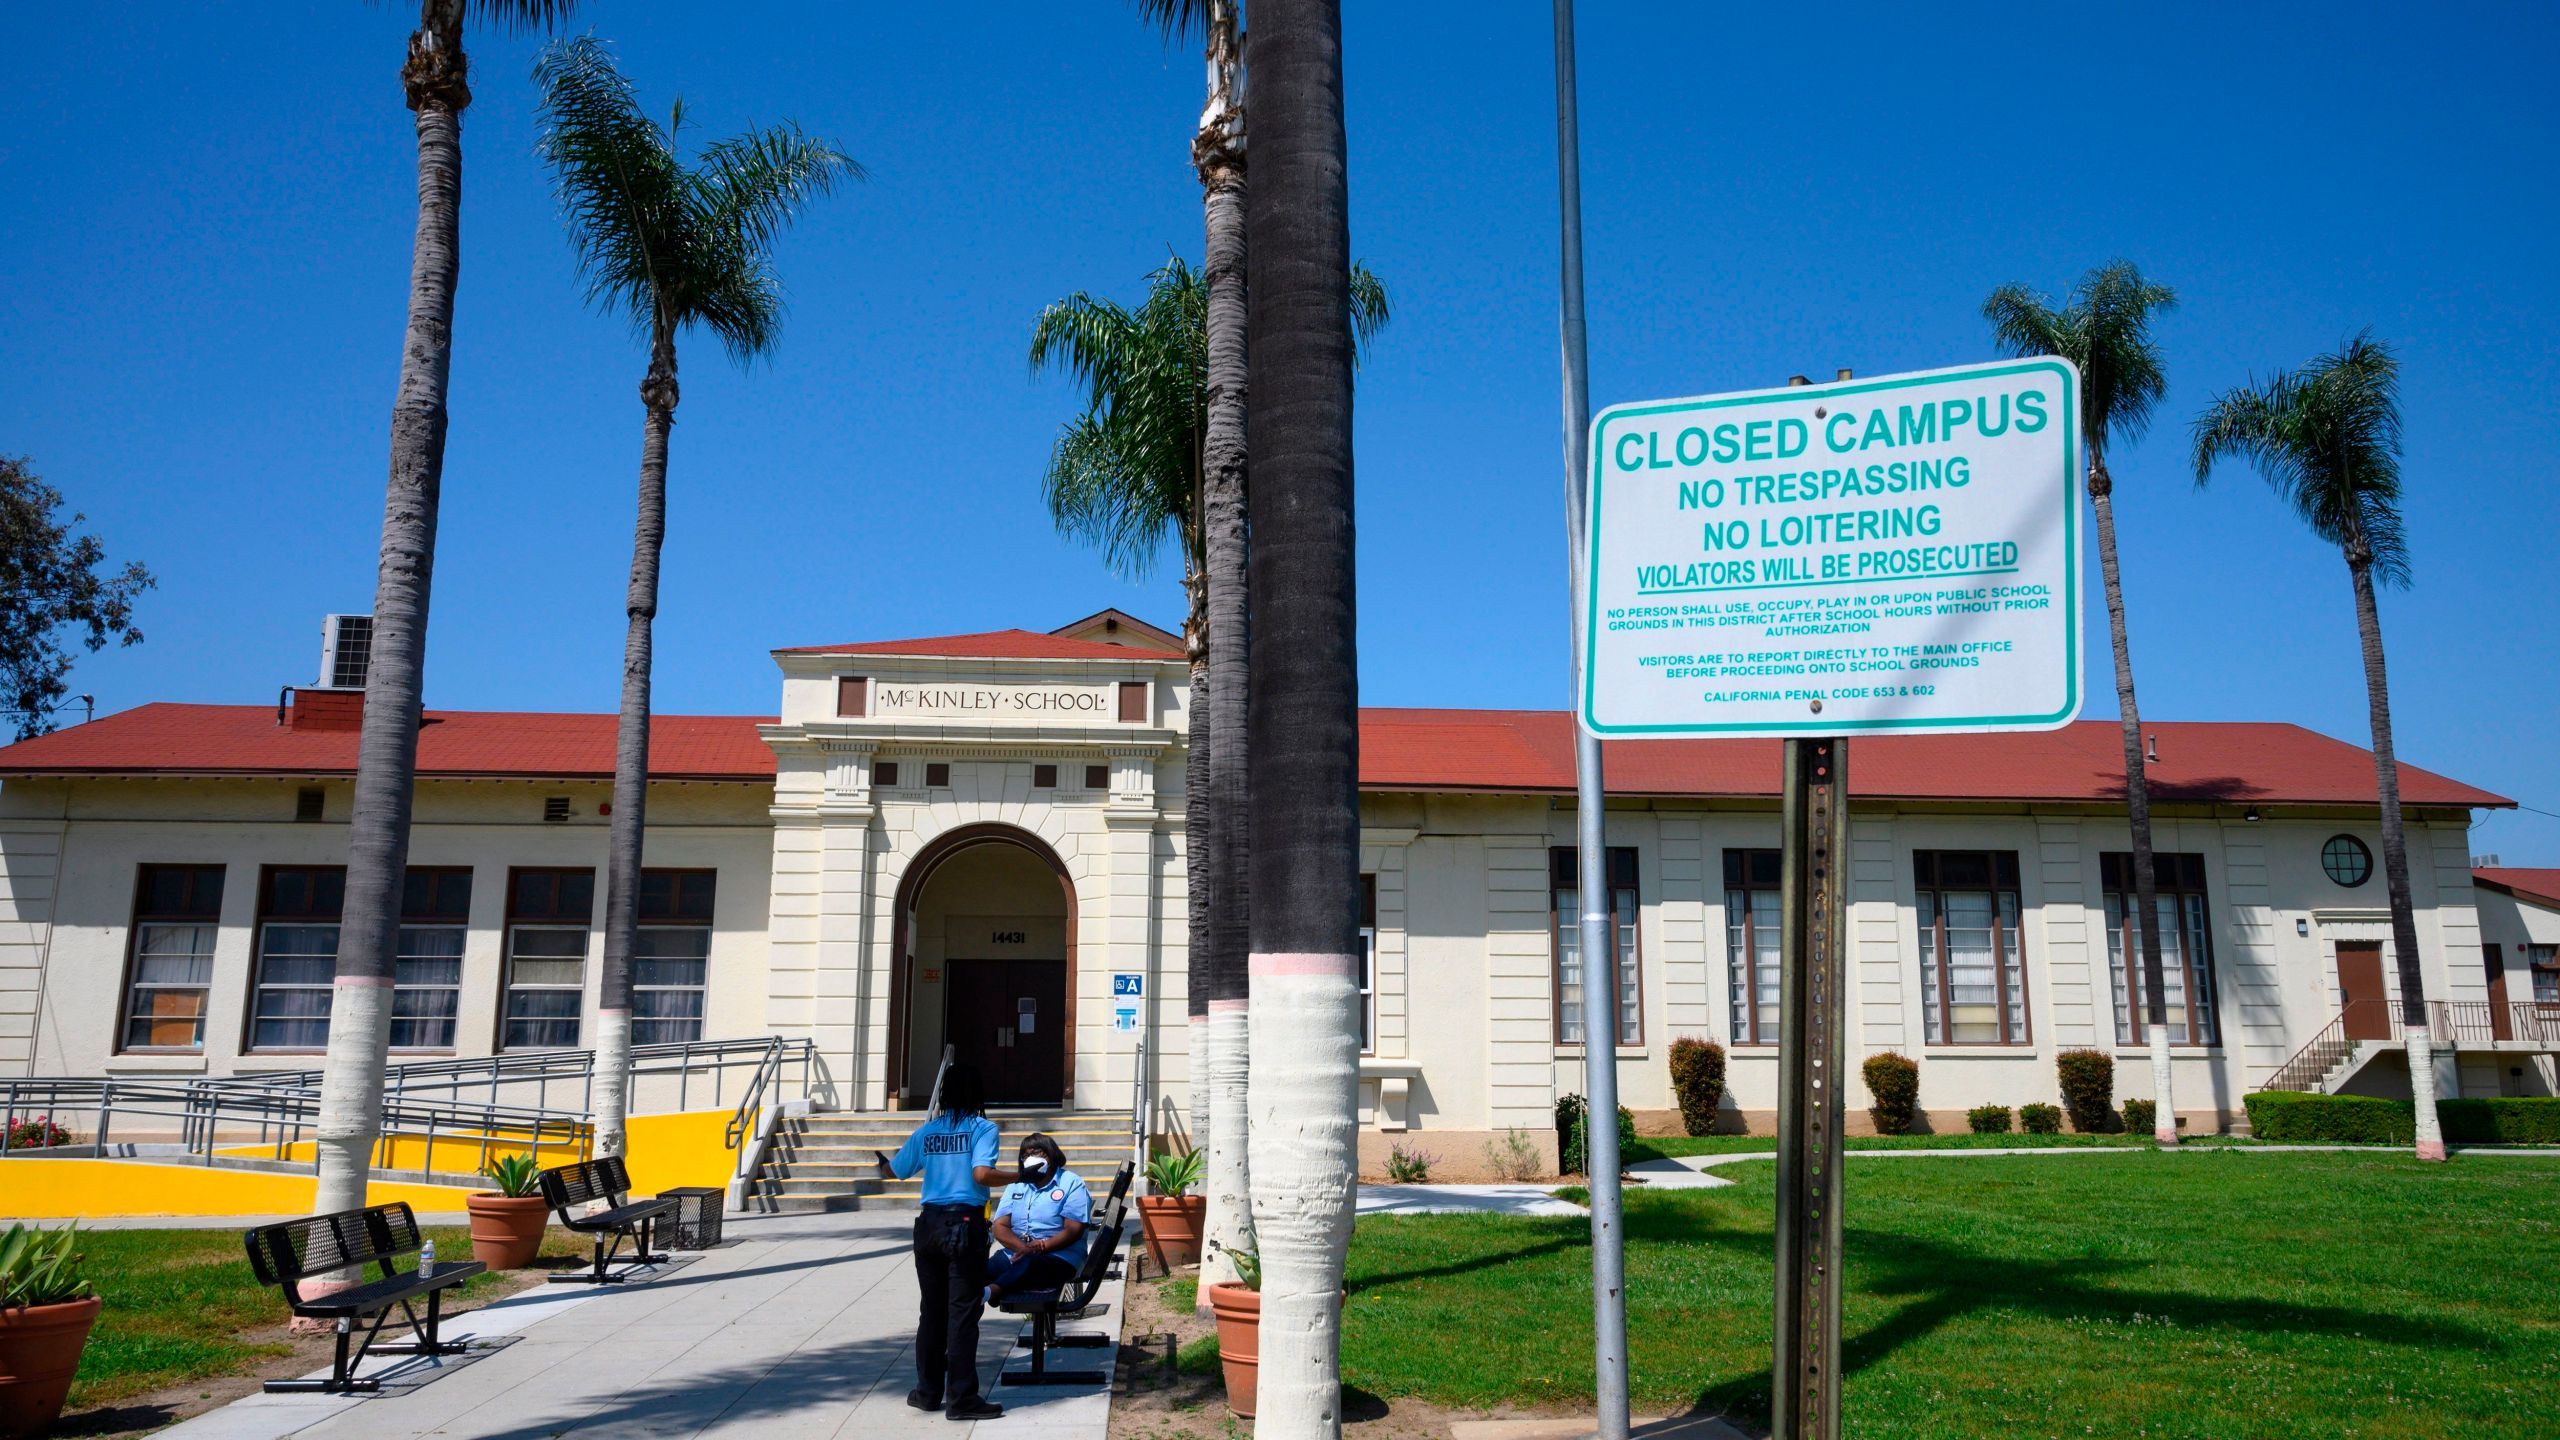 Two security guards talk on the campus of the closed McKinley School, part of the Los Angeles Unified School District (LAUSD) system, in Compton, California, just south of Los Angeles, on April 28, 2020. (ROBYN BECK/AFP via Getty Images)